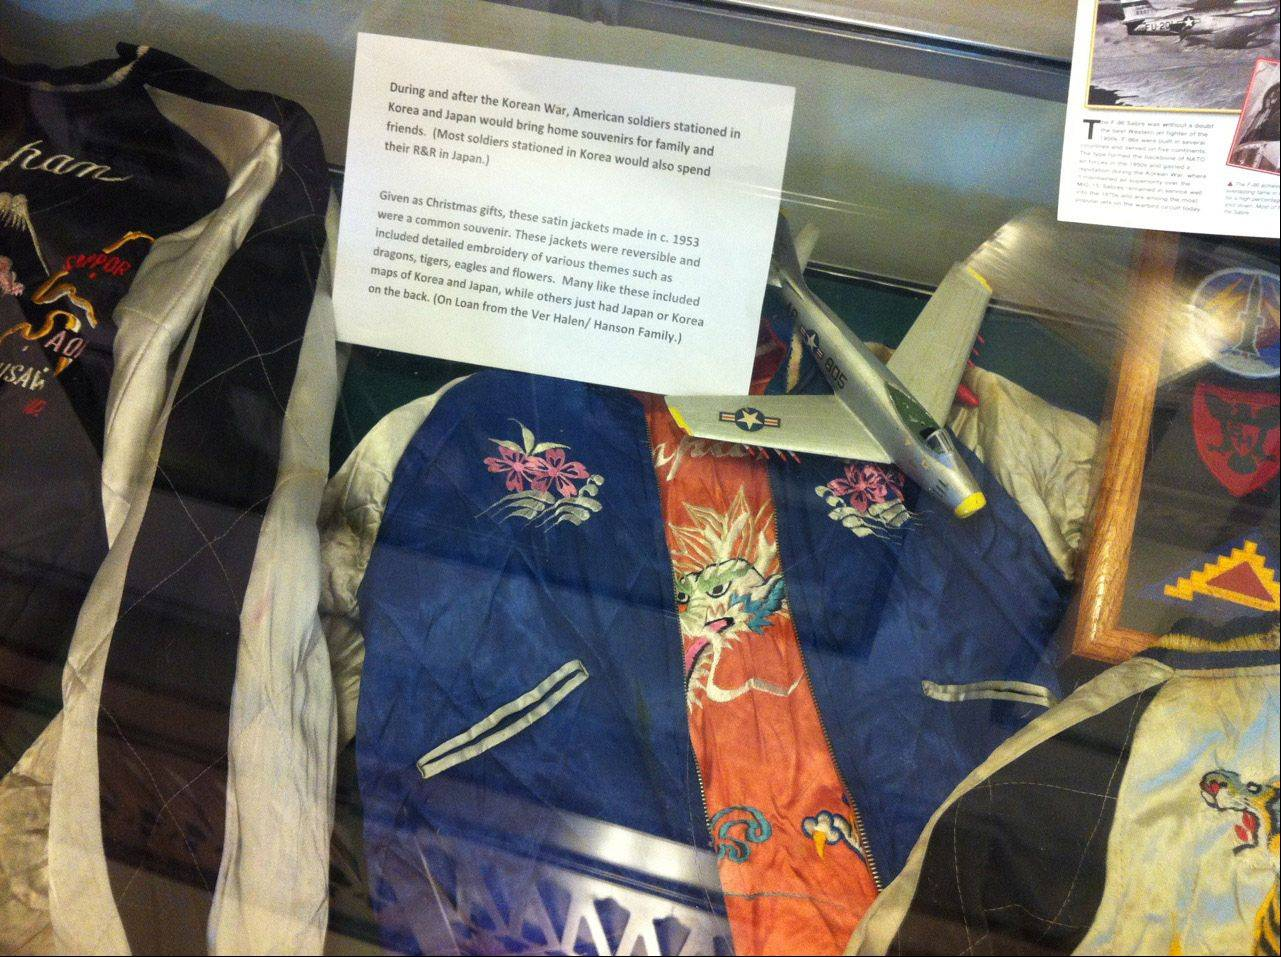 Satin jackets on display at the Korean War exhibit at the Skokie Heritage Museum.